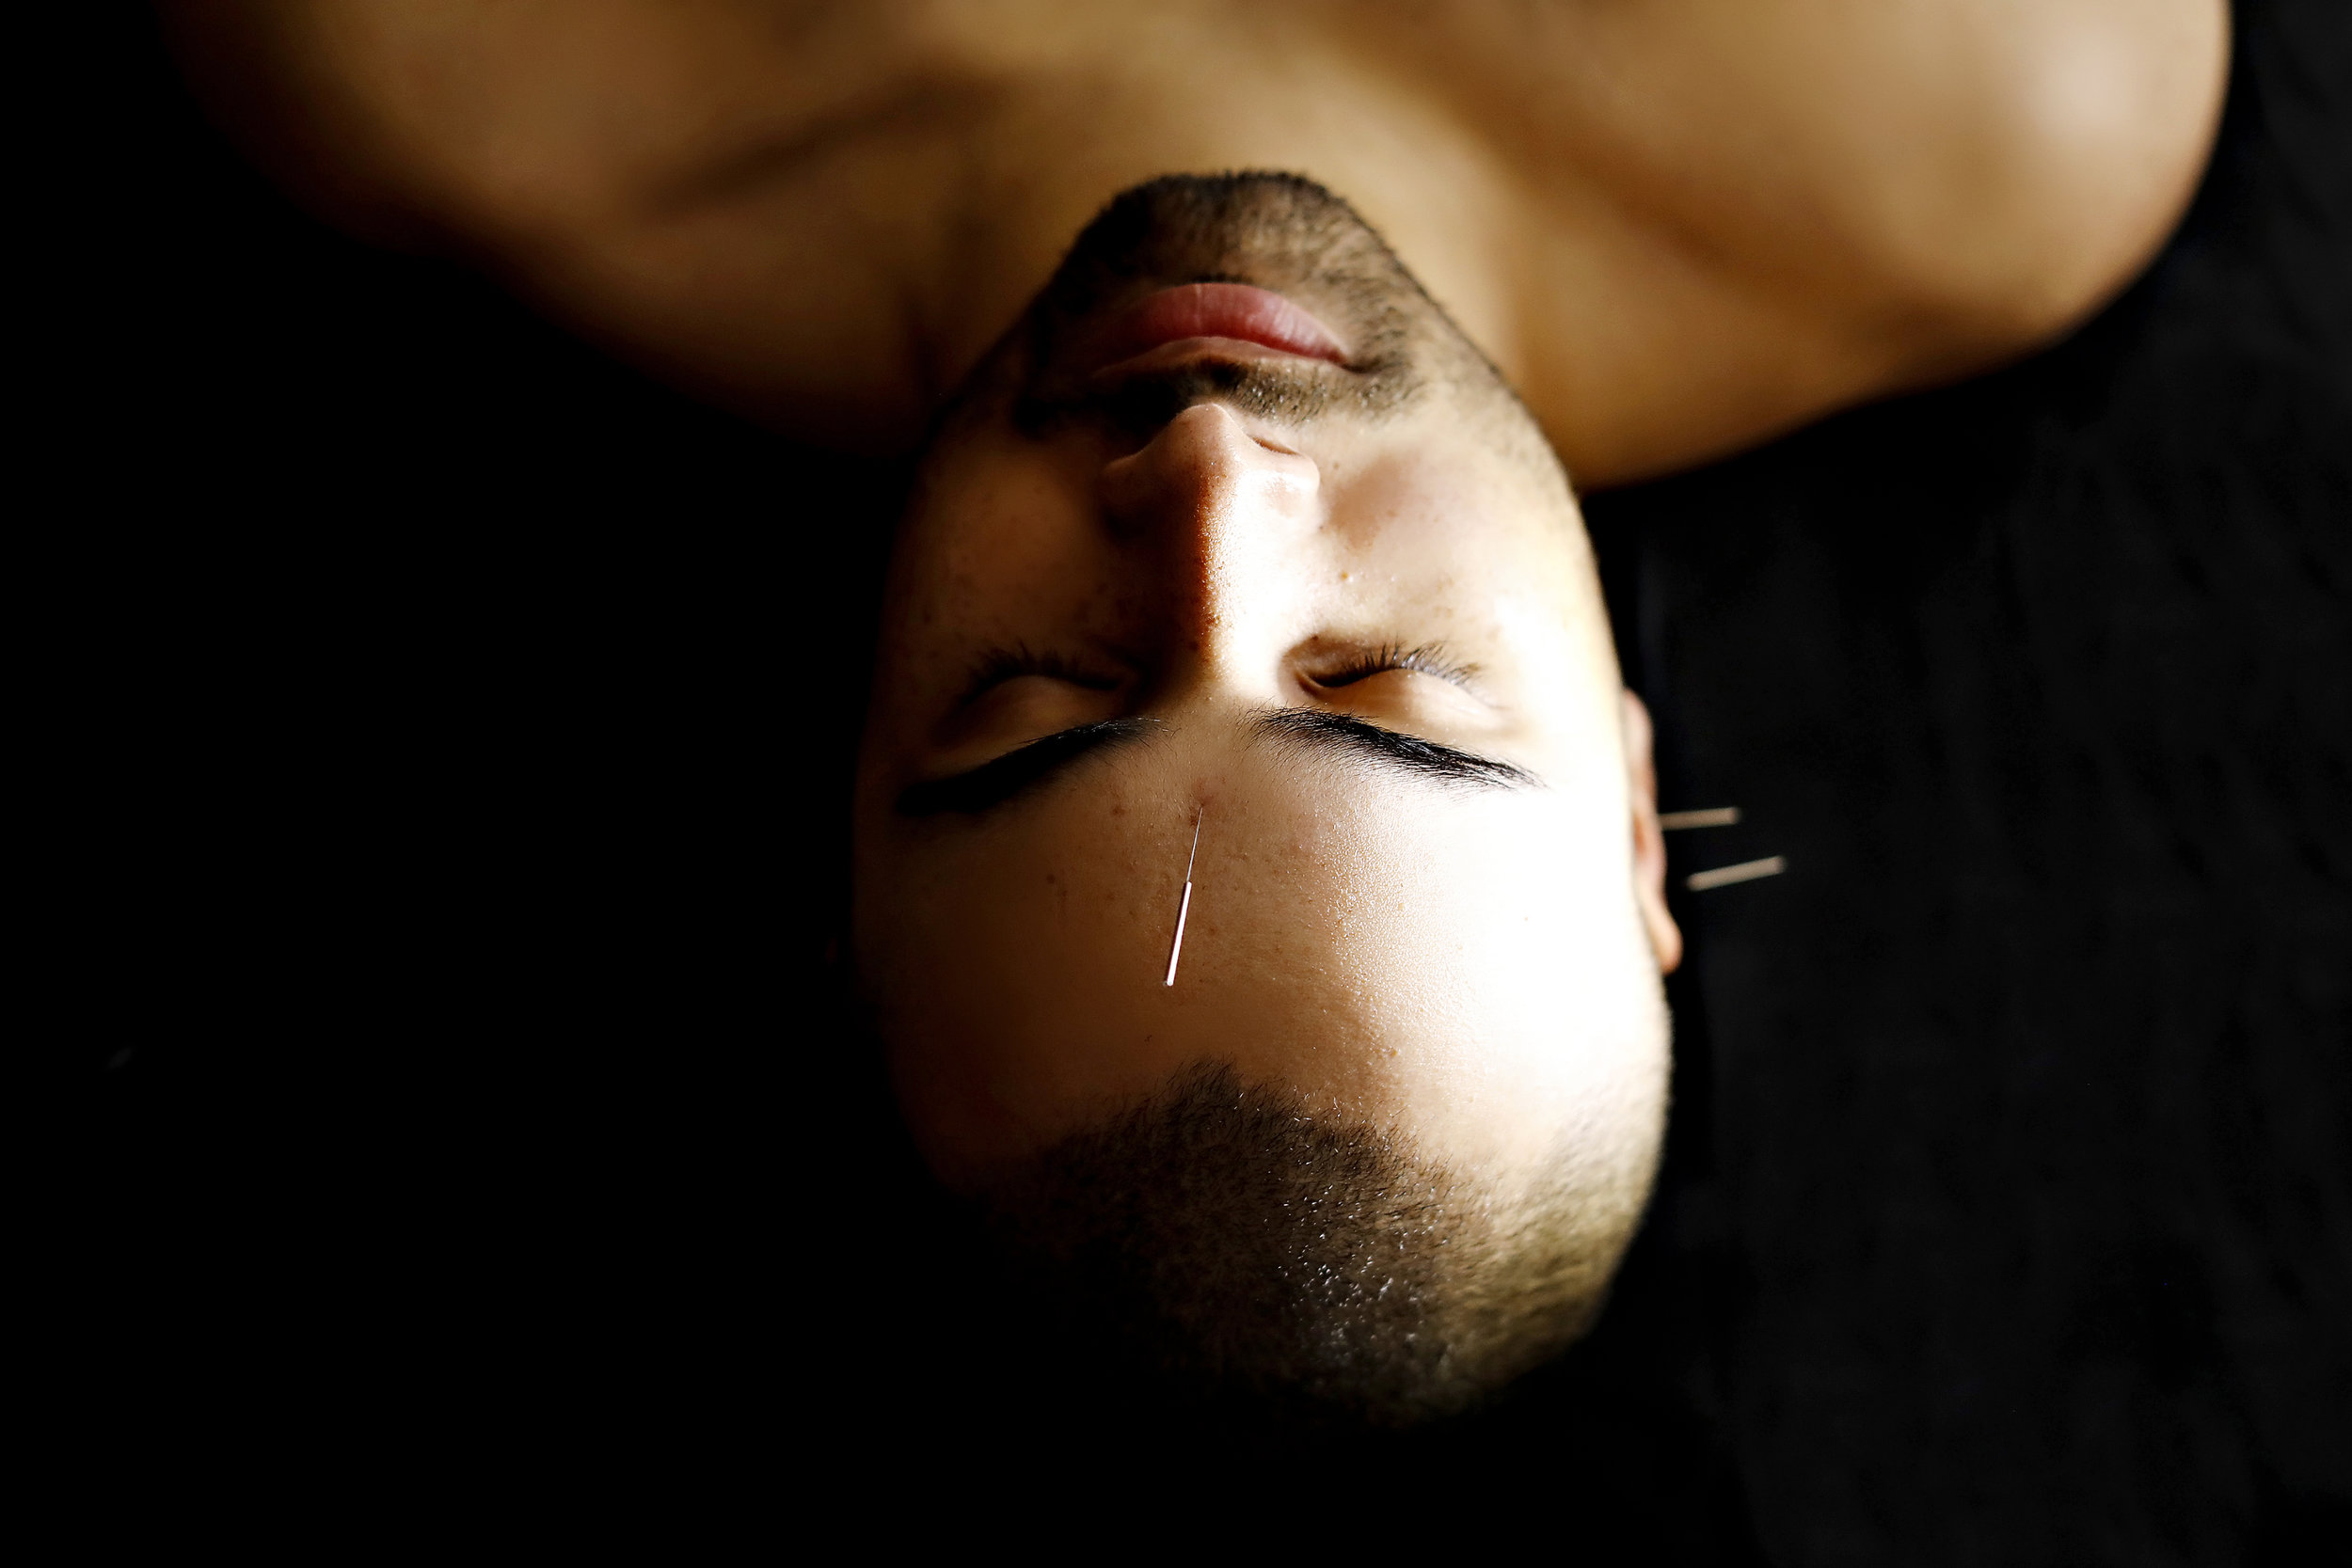 Optimizing the function of the nervous system through acupuncture and TCM.